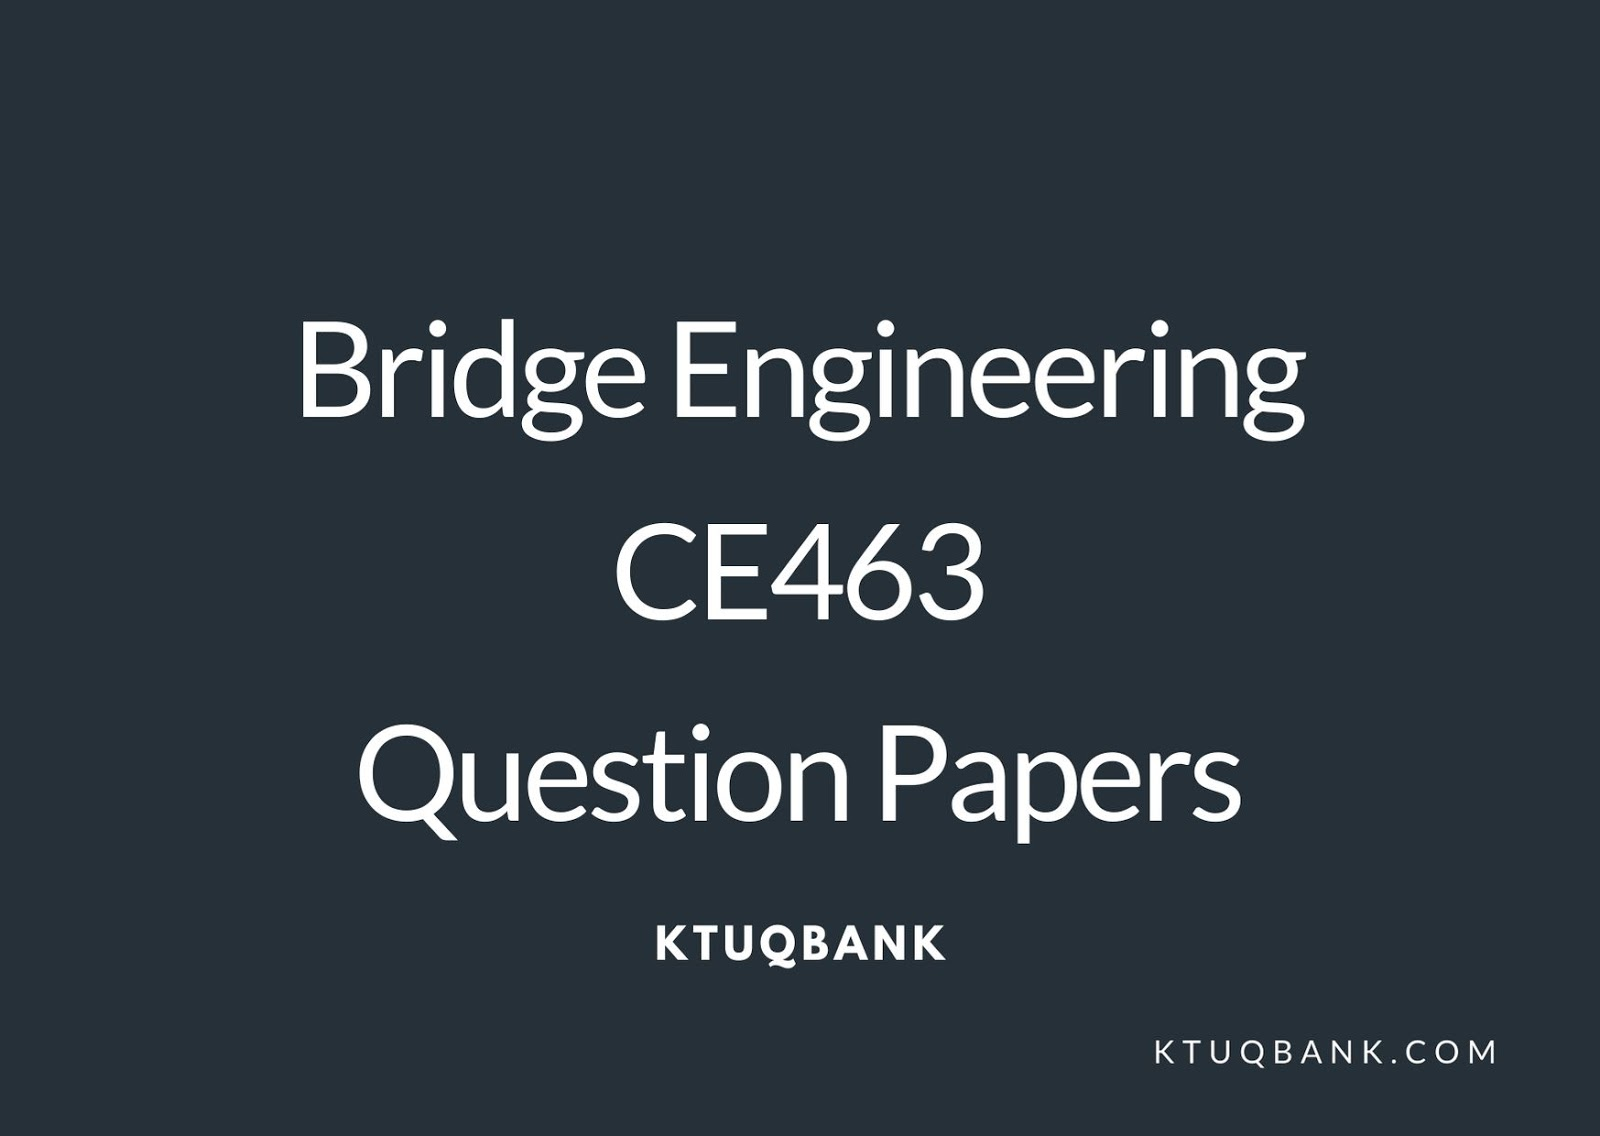 Bridge Engineering | CE463 | Question Papers (2015 batch)